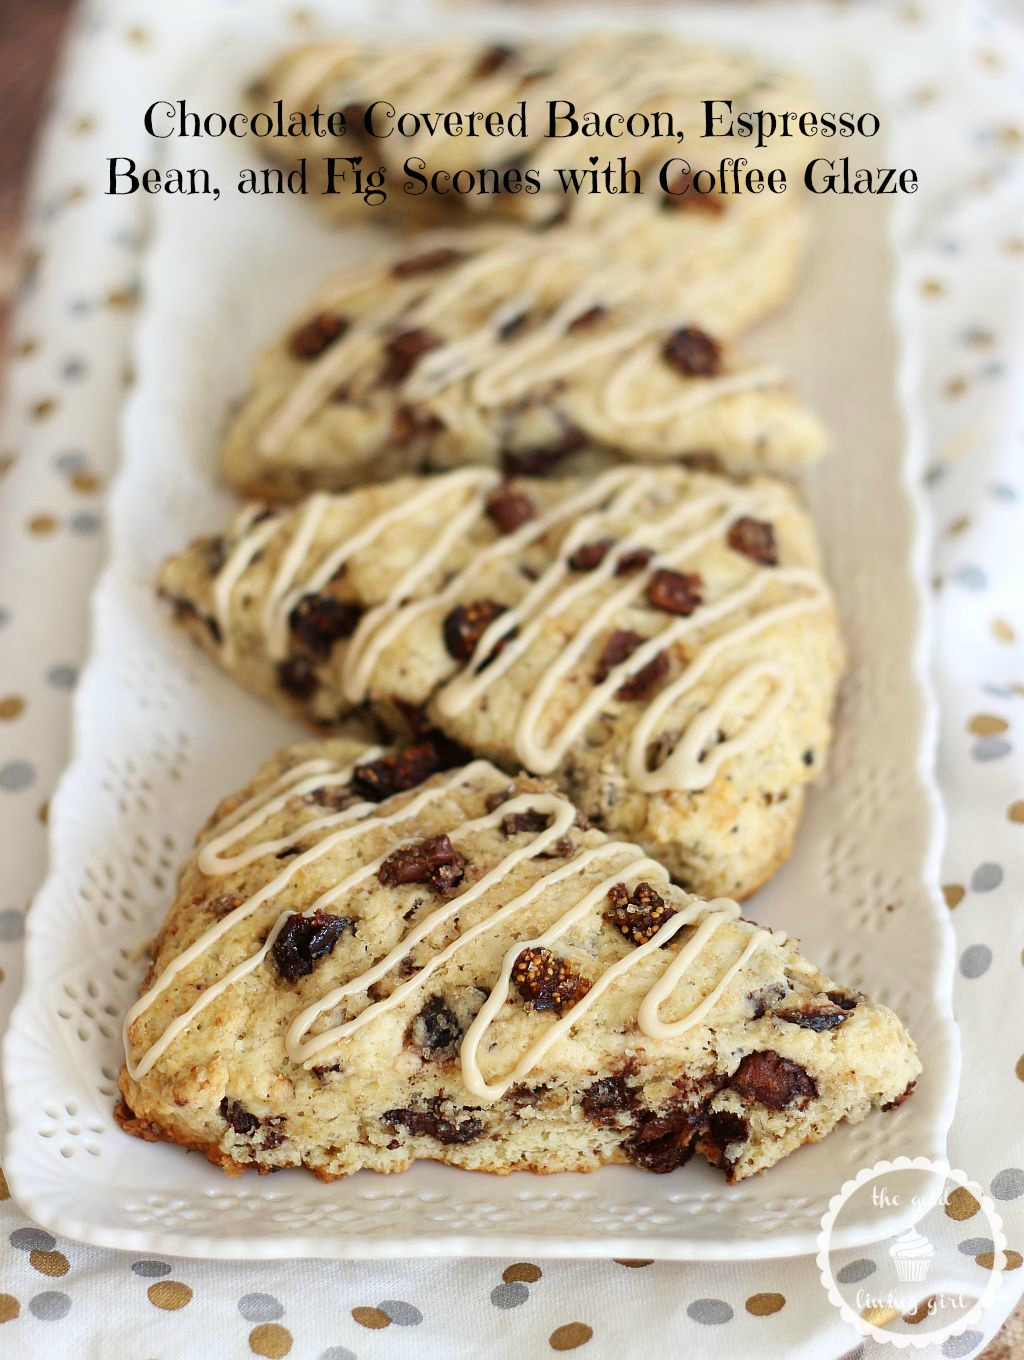 Chocolate Covered Bacon, Espresso Bean, and Fig Scones